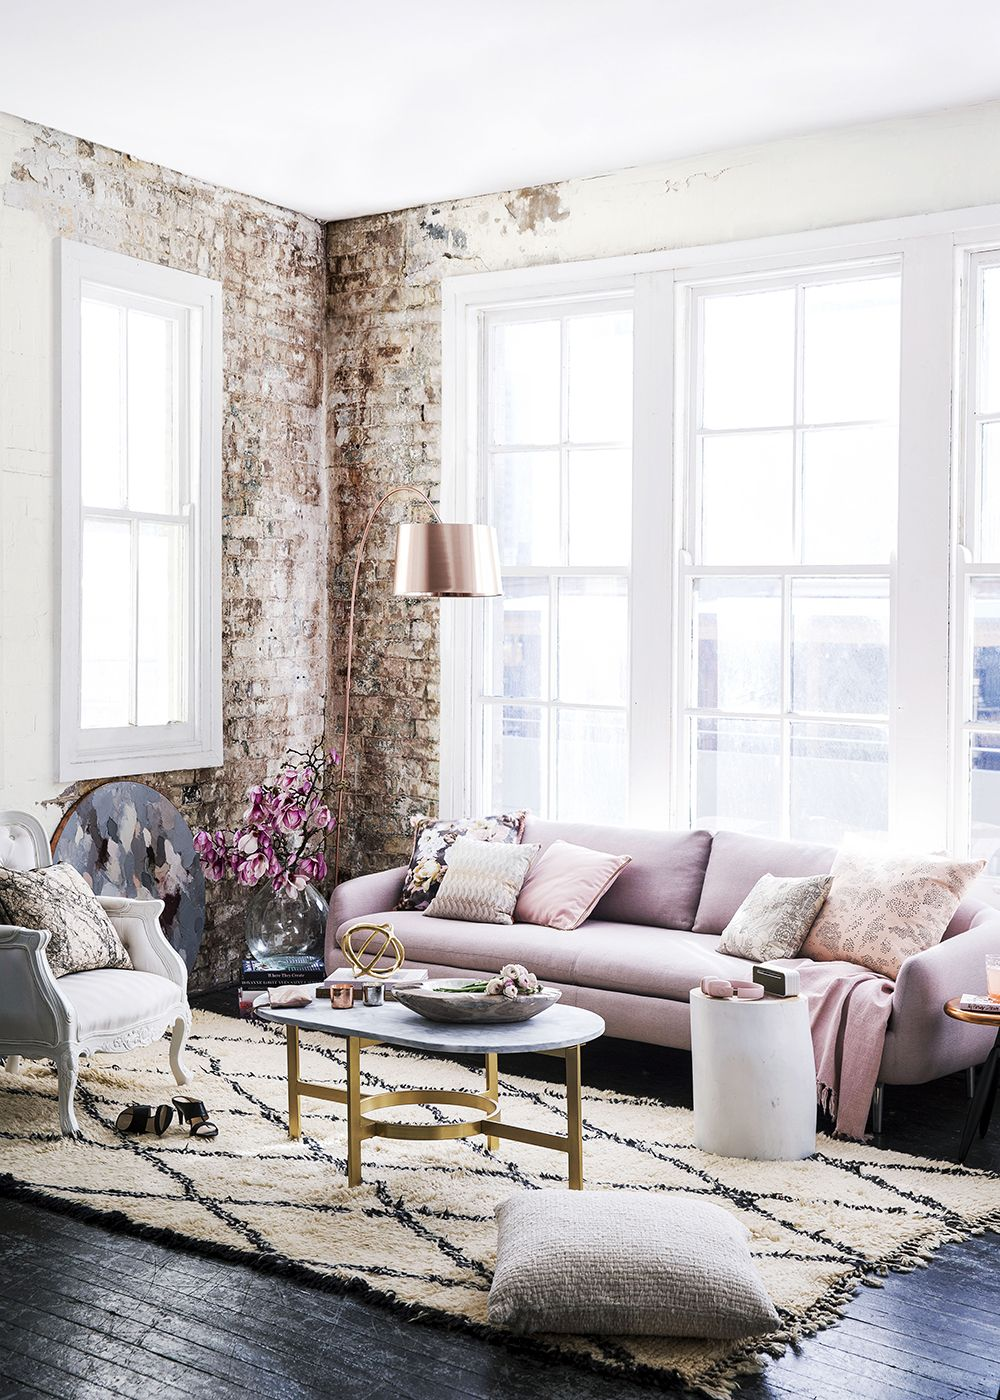 5 ways to decorate your apartment like an interior designer career girl daily